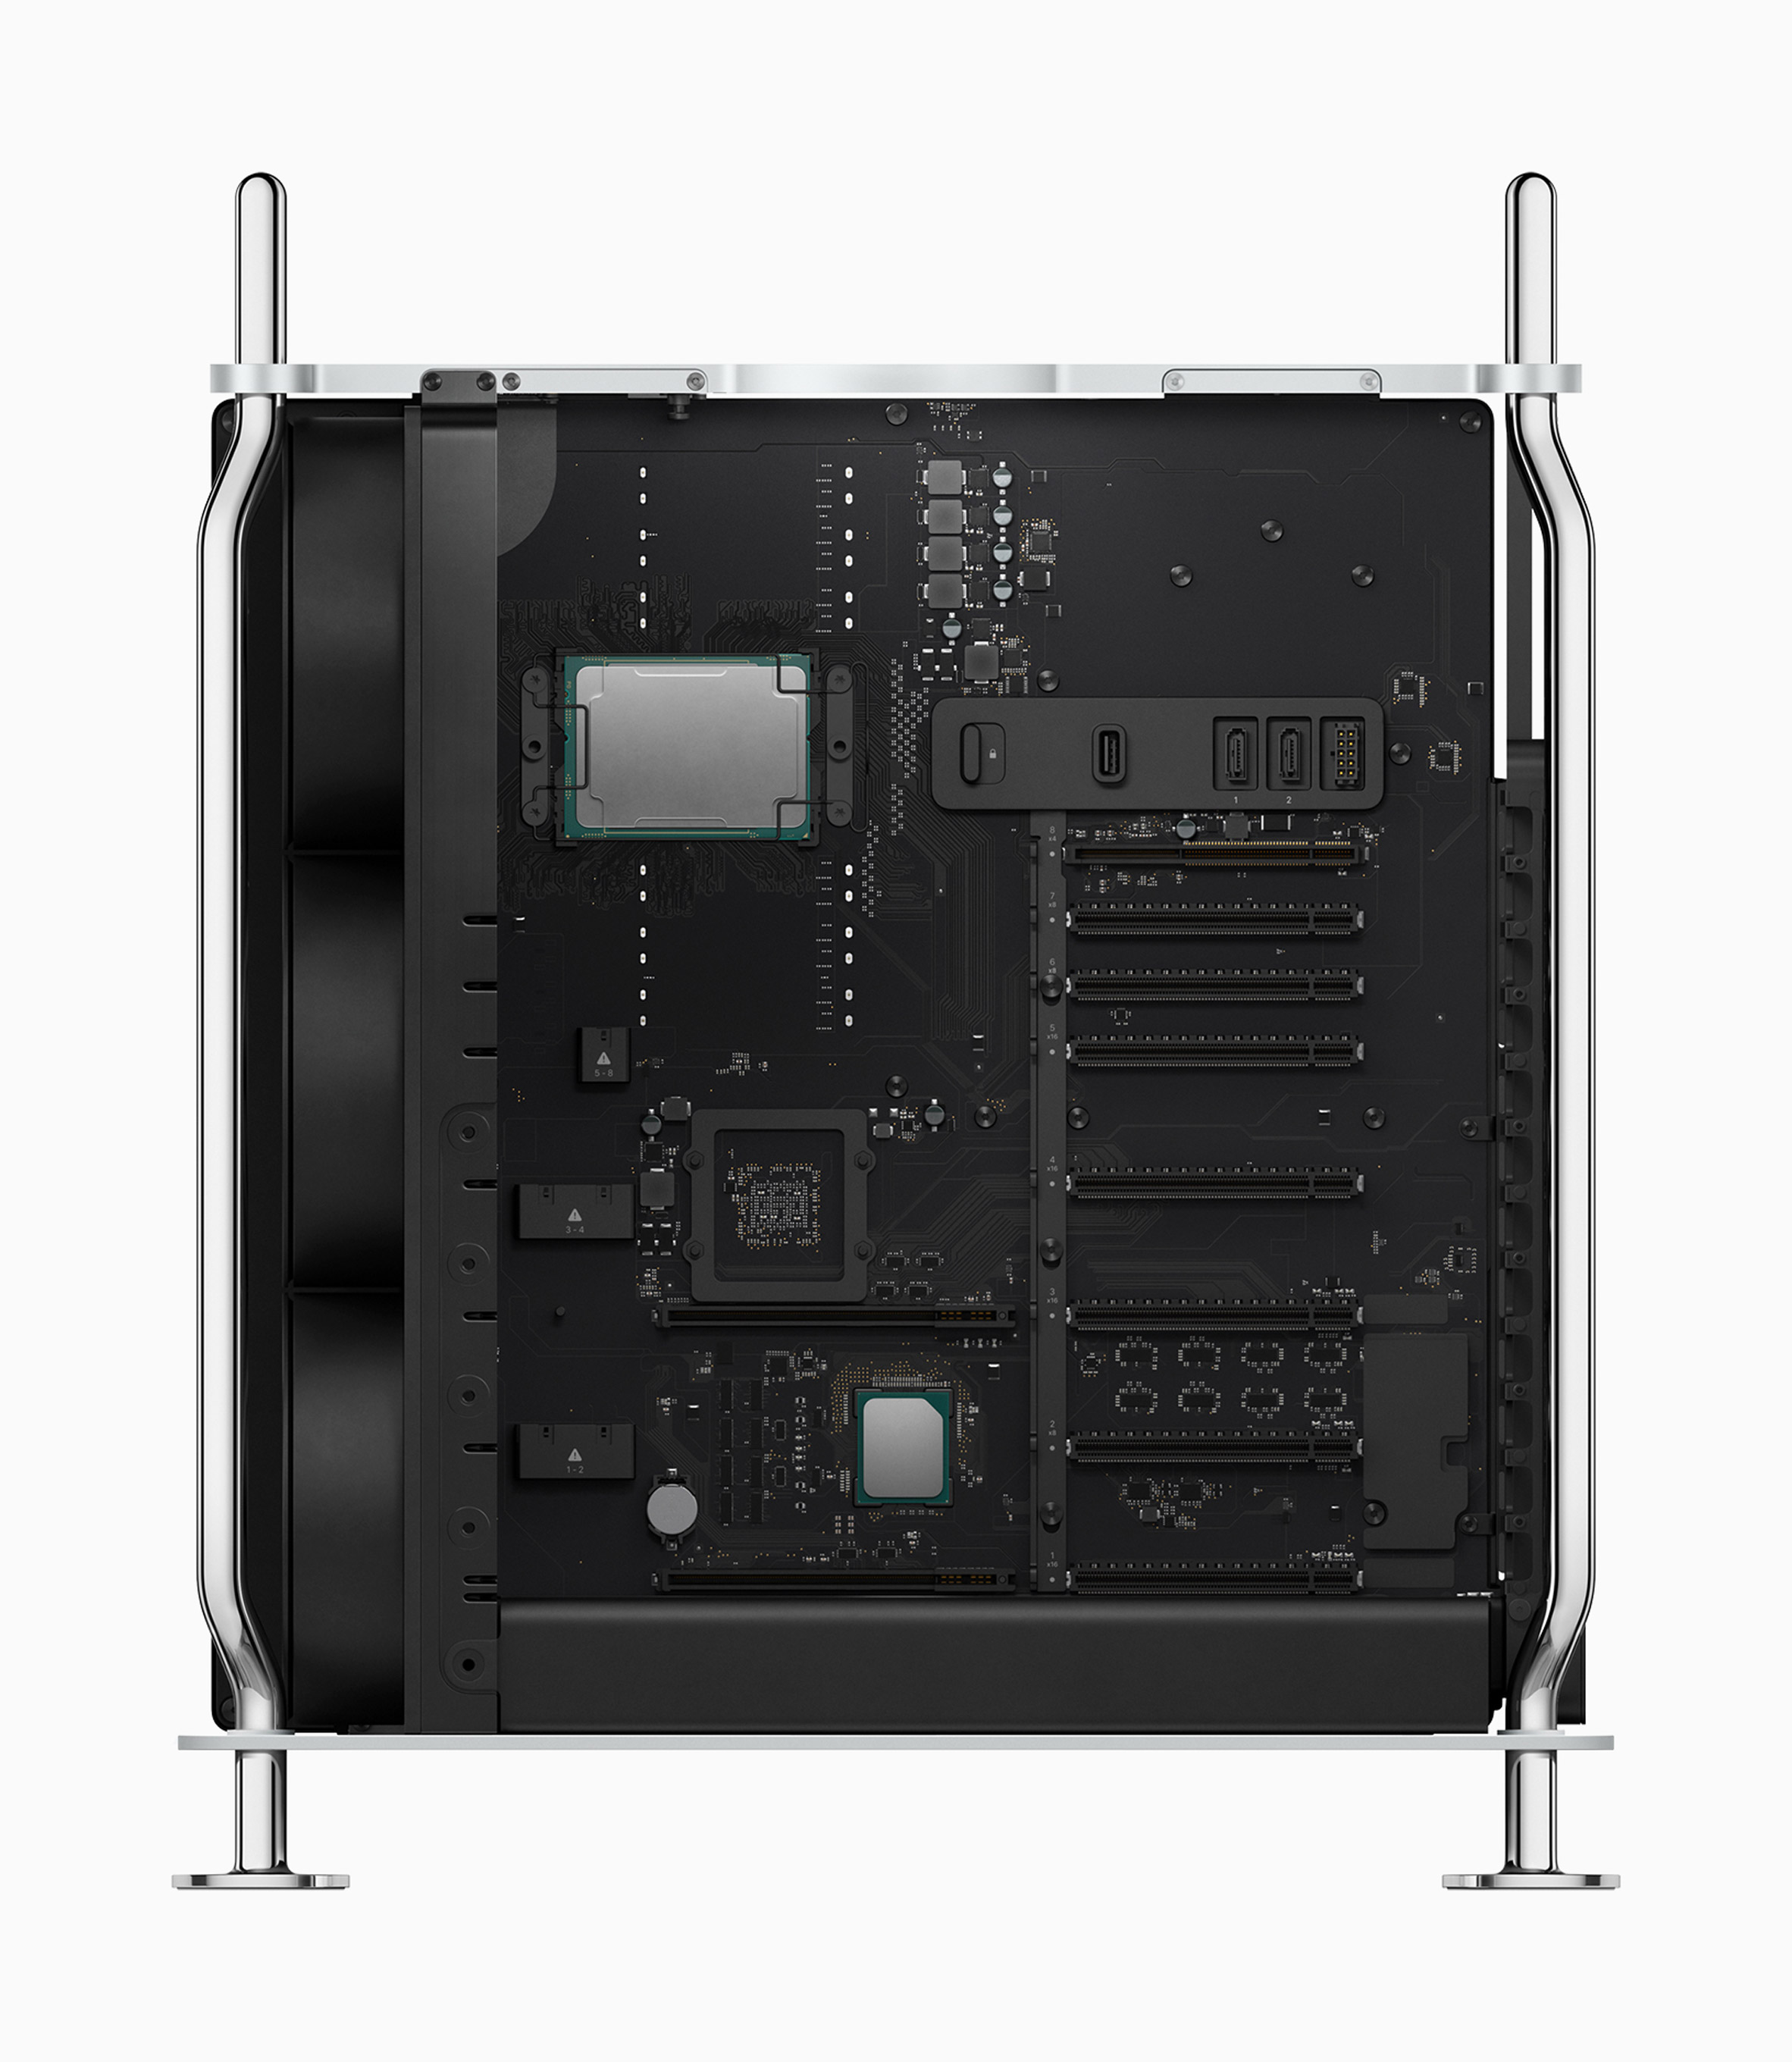 Apple-giu-su-don-gian-cho-mac-pro-2019-3